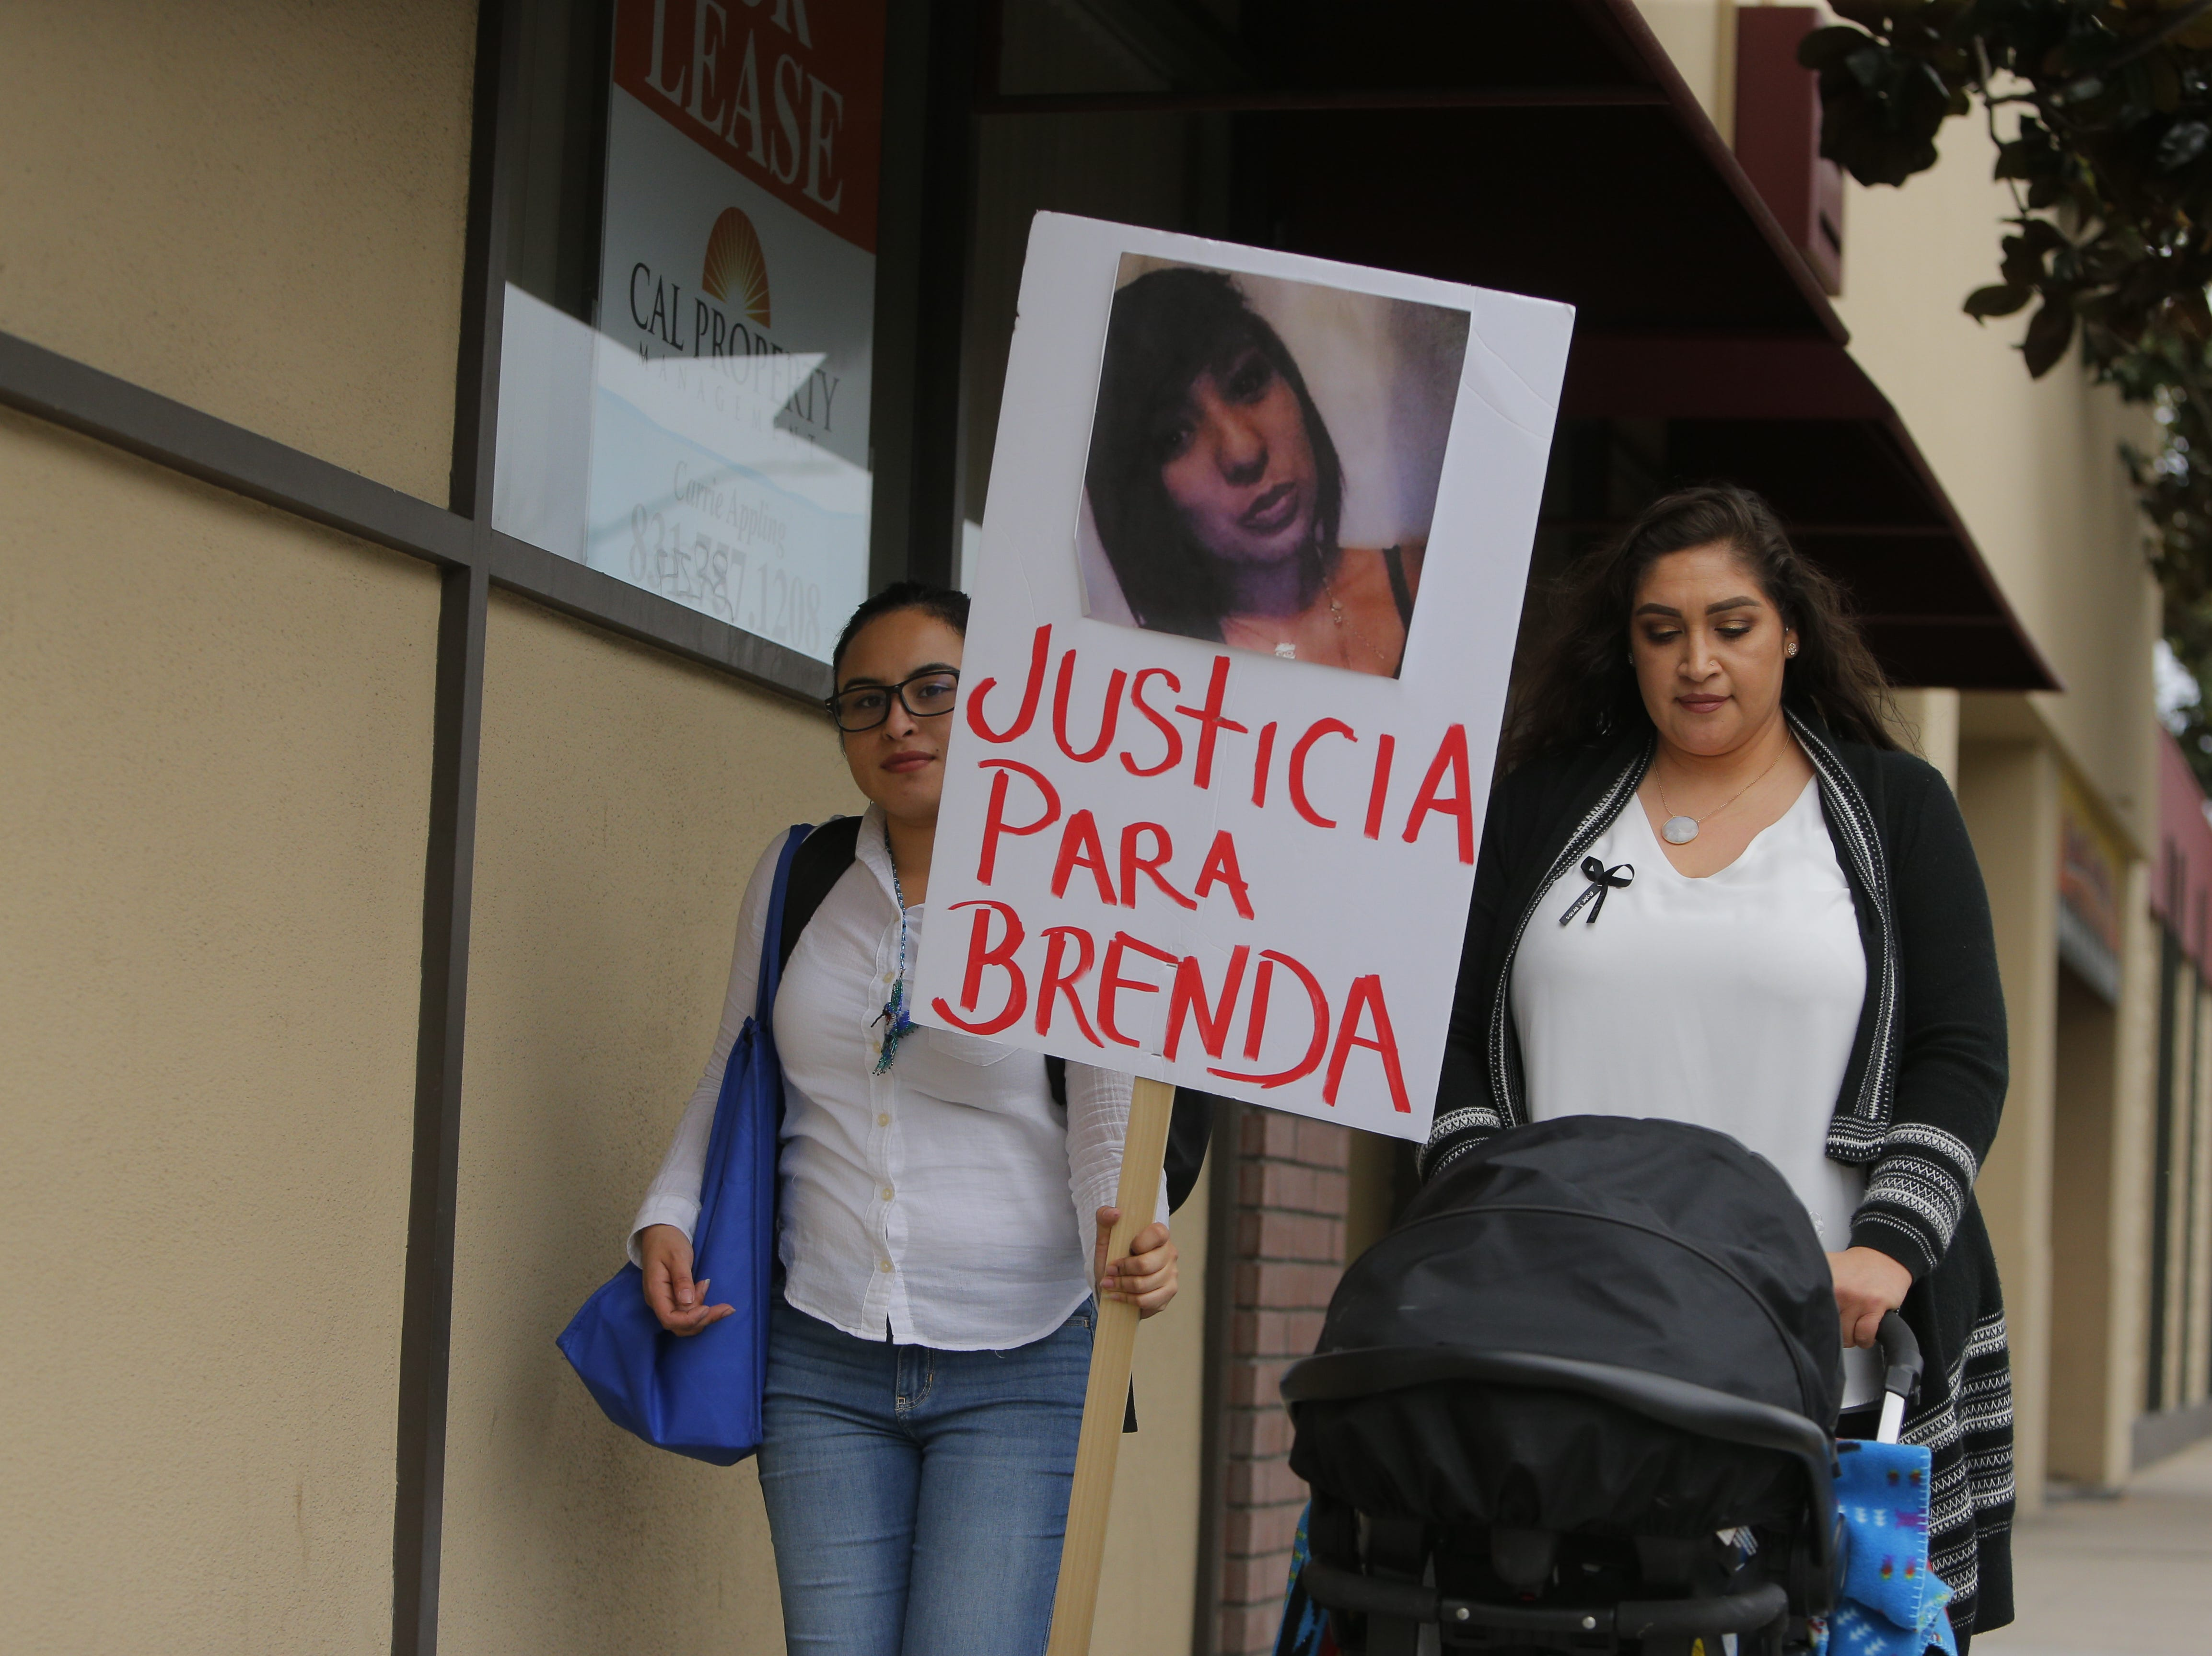 On March 19, Iaram Coronado and Laura Tinajero protest the death of Brenda Mendoza who was shot by police on March 1.